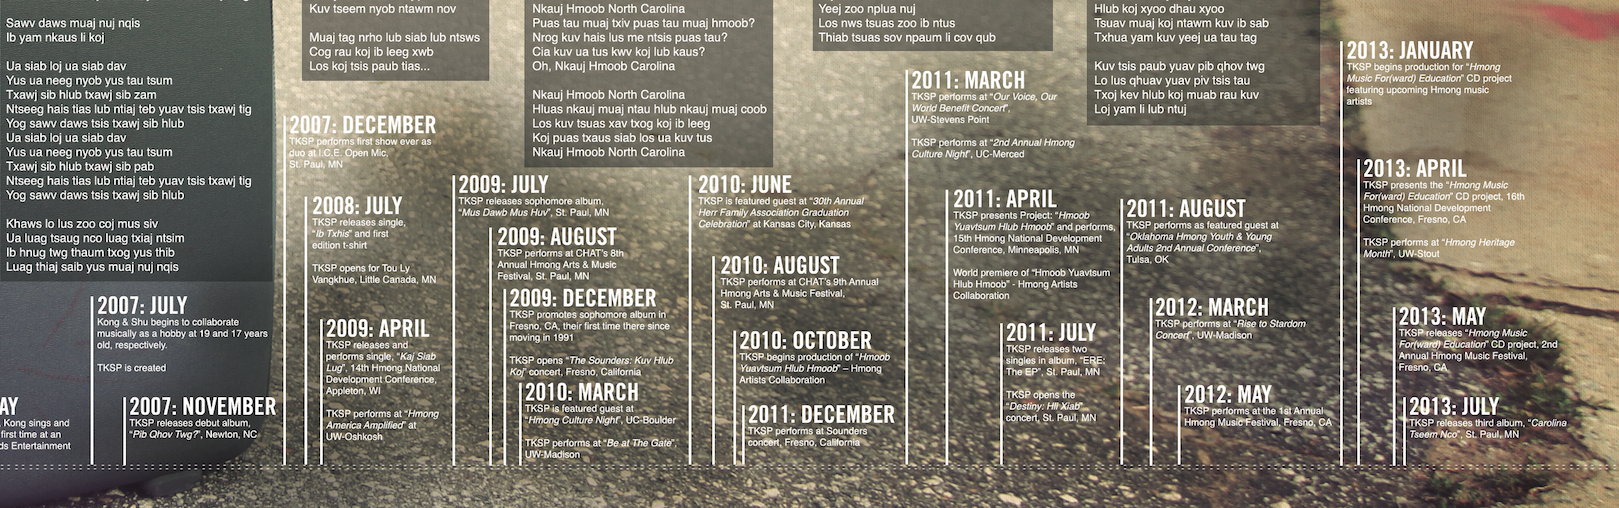 Click on the image for an up close view of The Kong & Shu Project timeline.